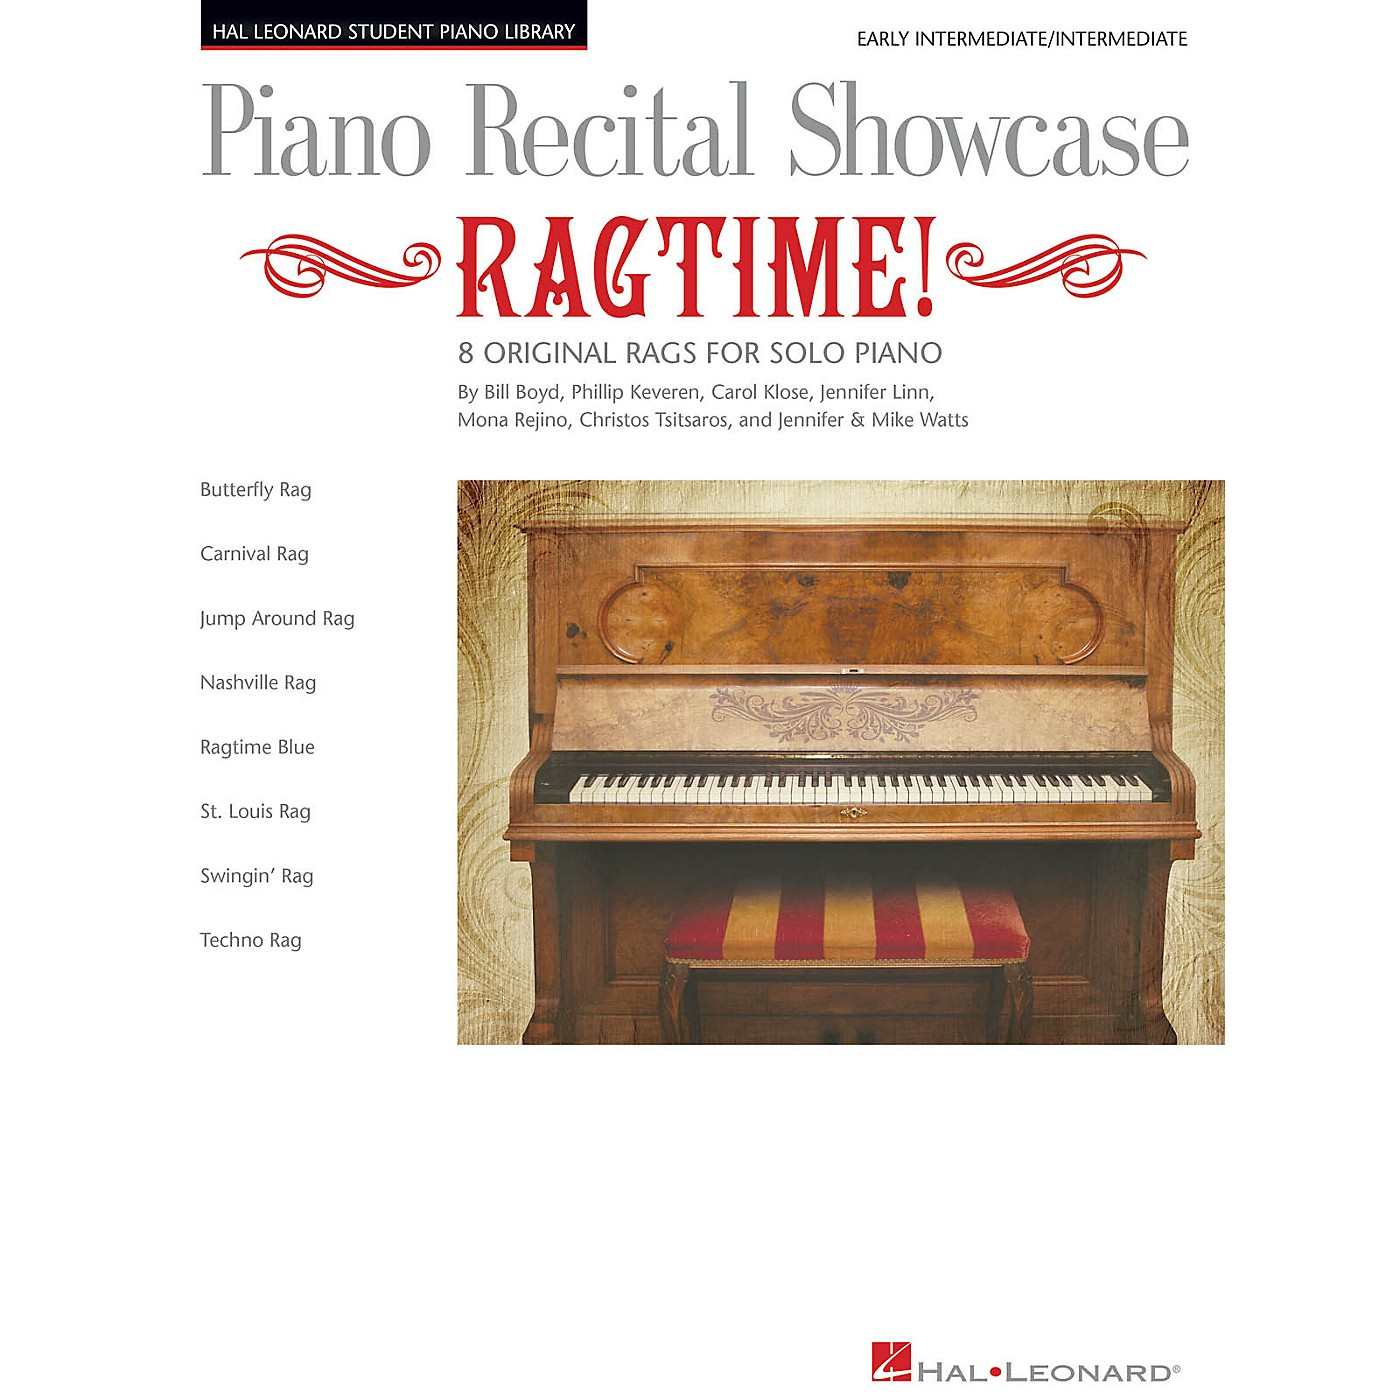 Hal Leonard Piano Recital Showcase: Ragtime! Piano Library Series Book by Various (Level Early Inter) thumbnail